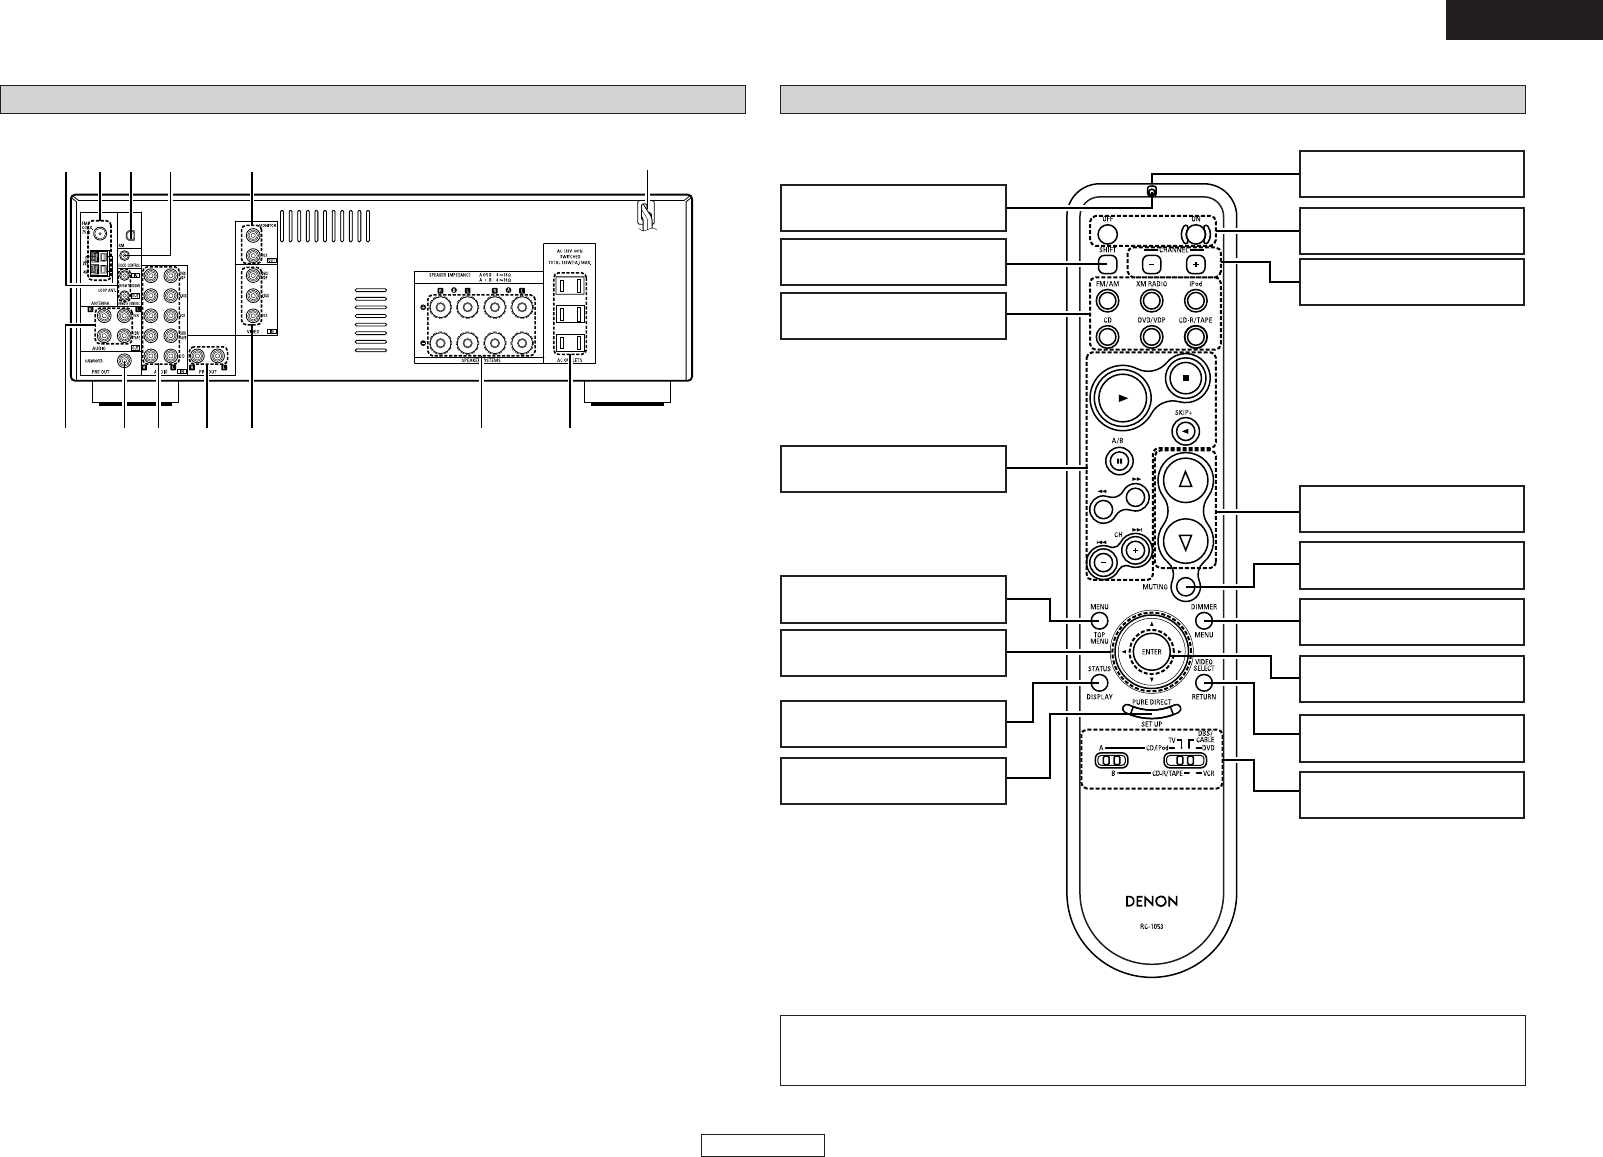 Page 7 of Denon Stereo Receiver DRA-37 User Guide